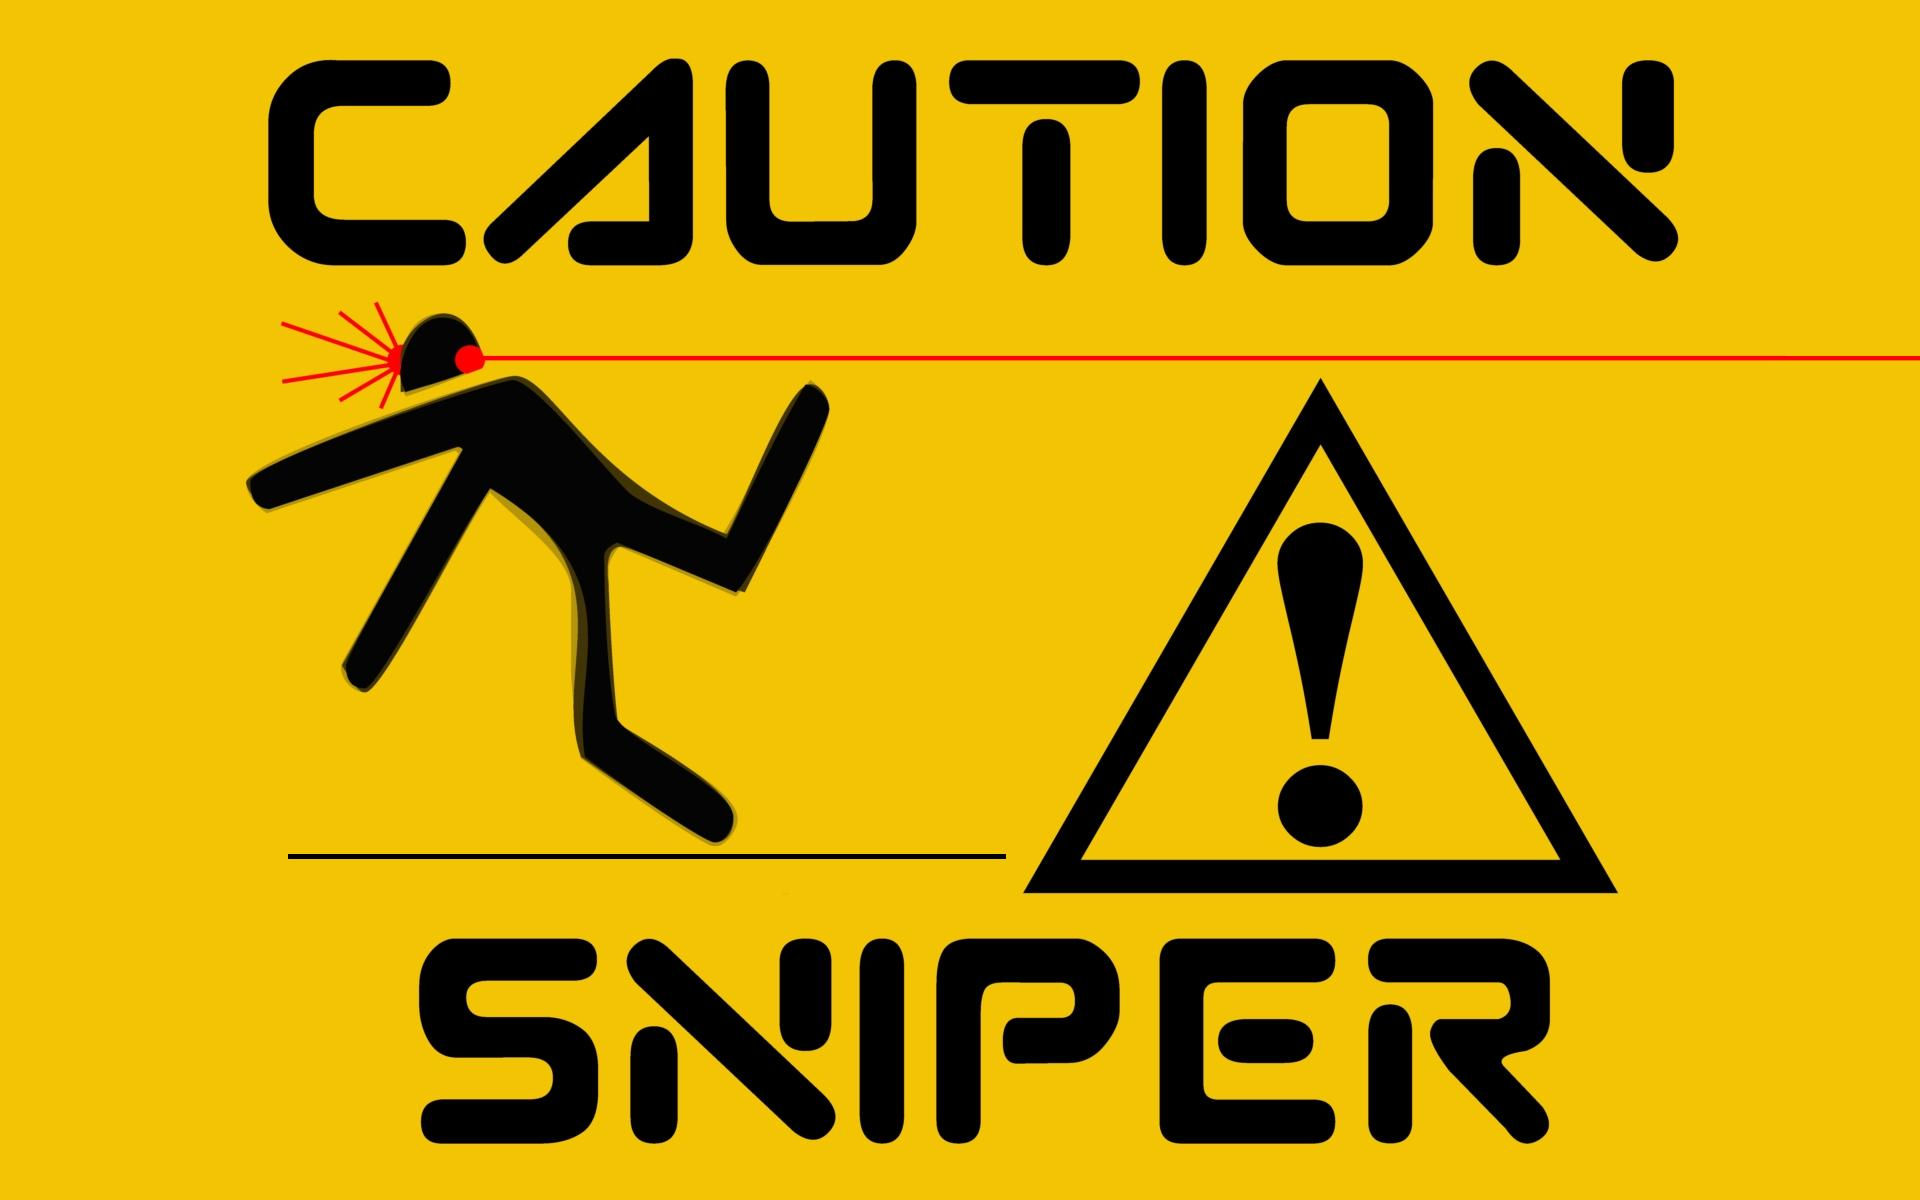 Sniper Wallpapers Caution Sniper Myspace Backgrounds Caution Sniper 1920x1200